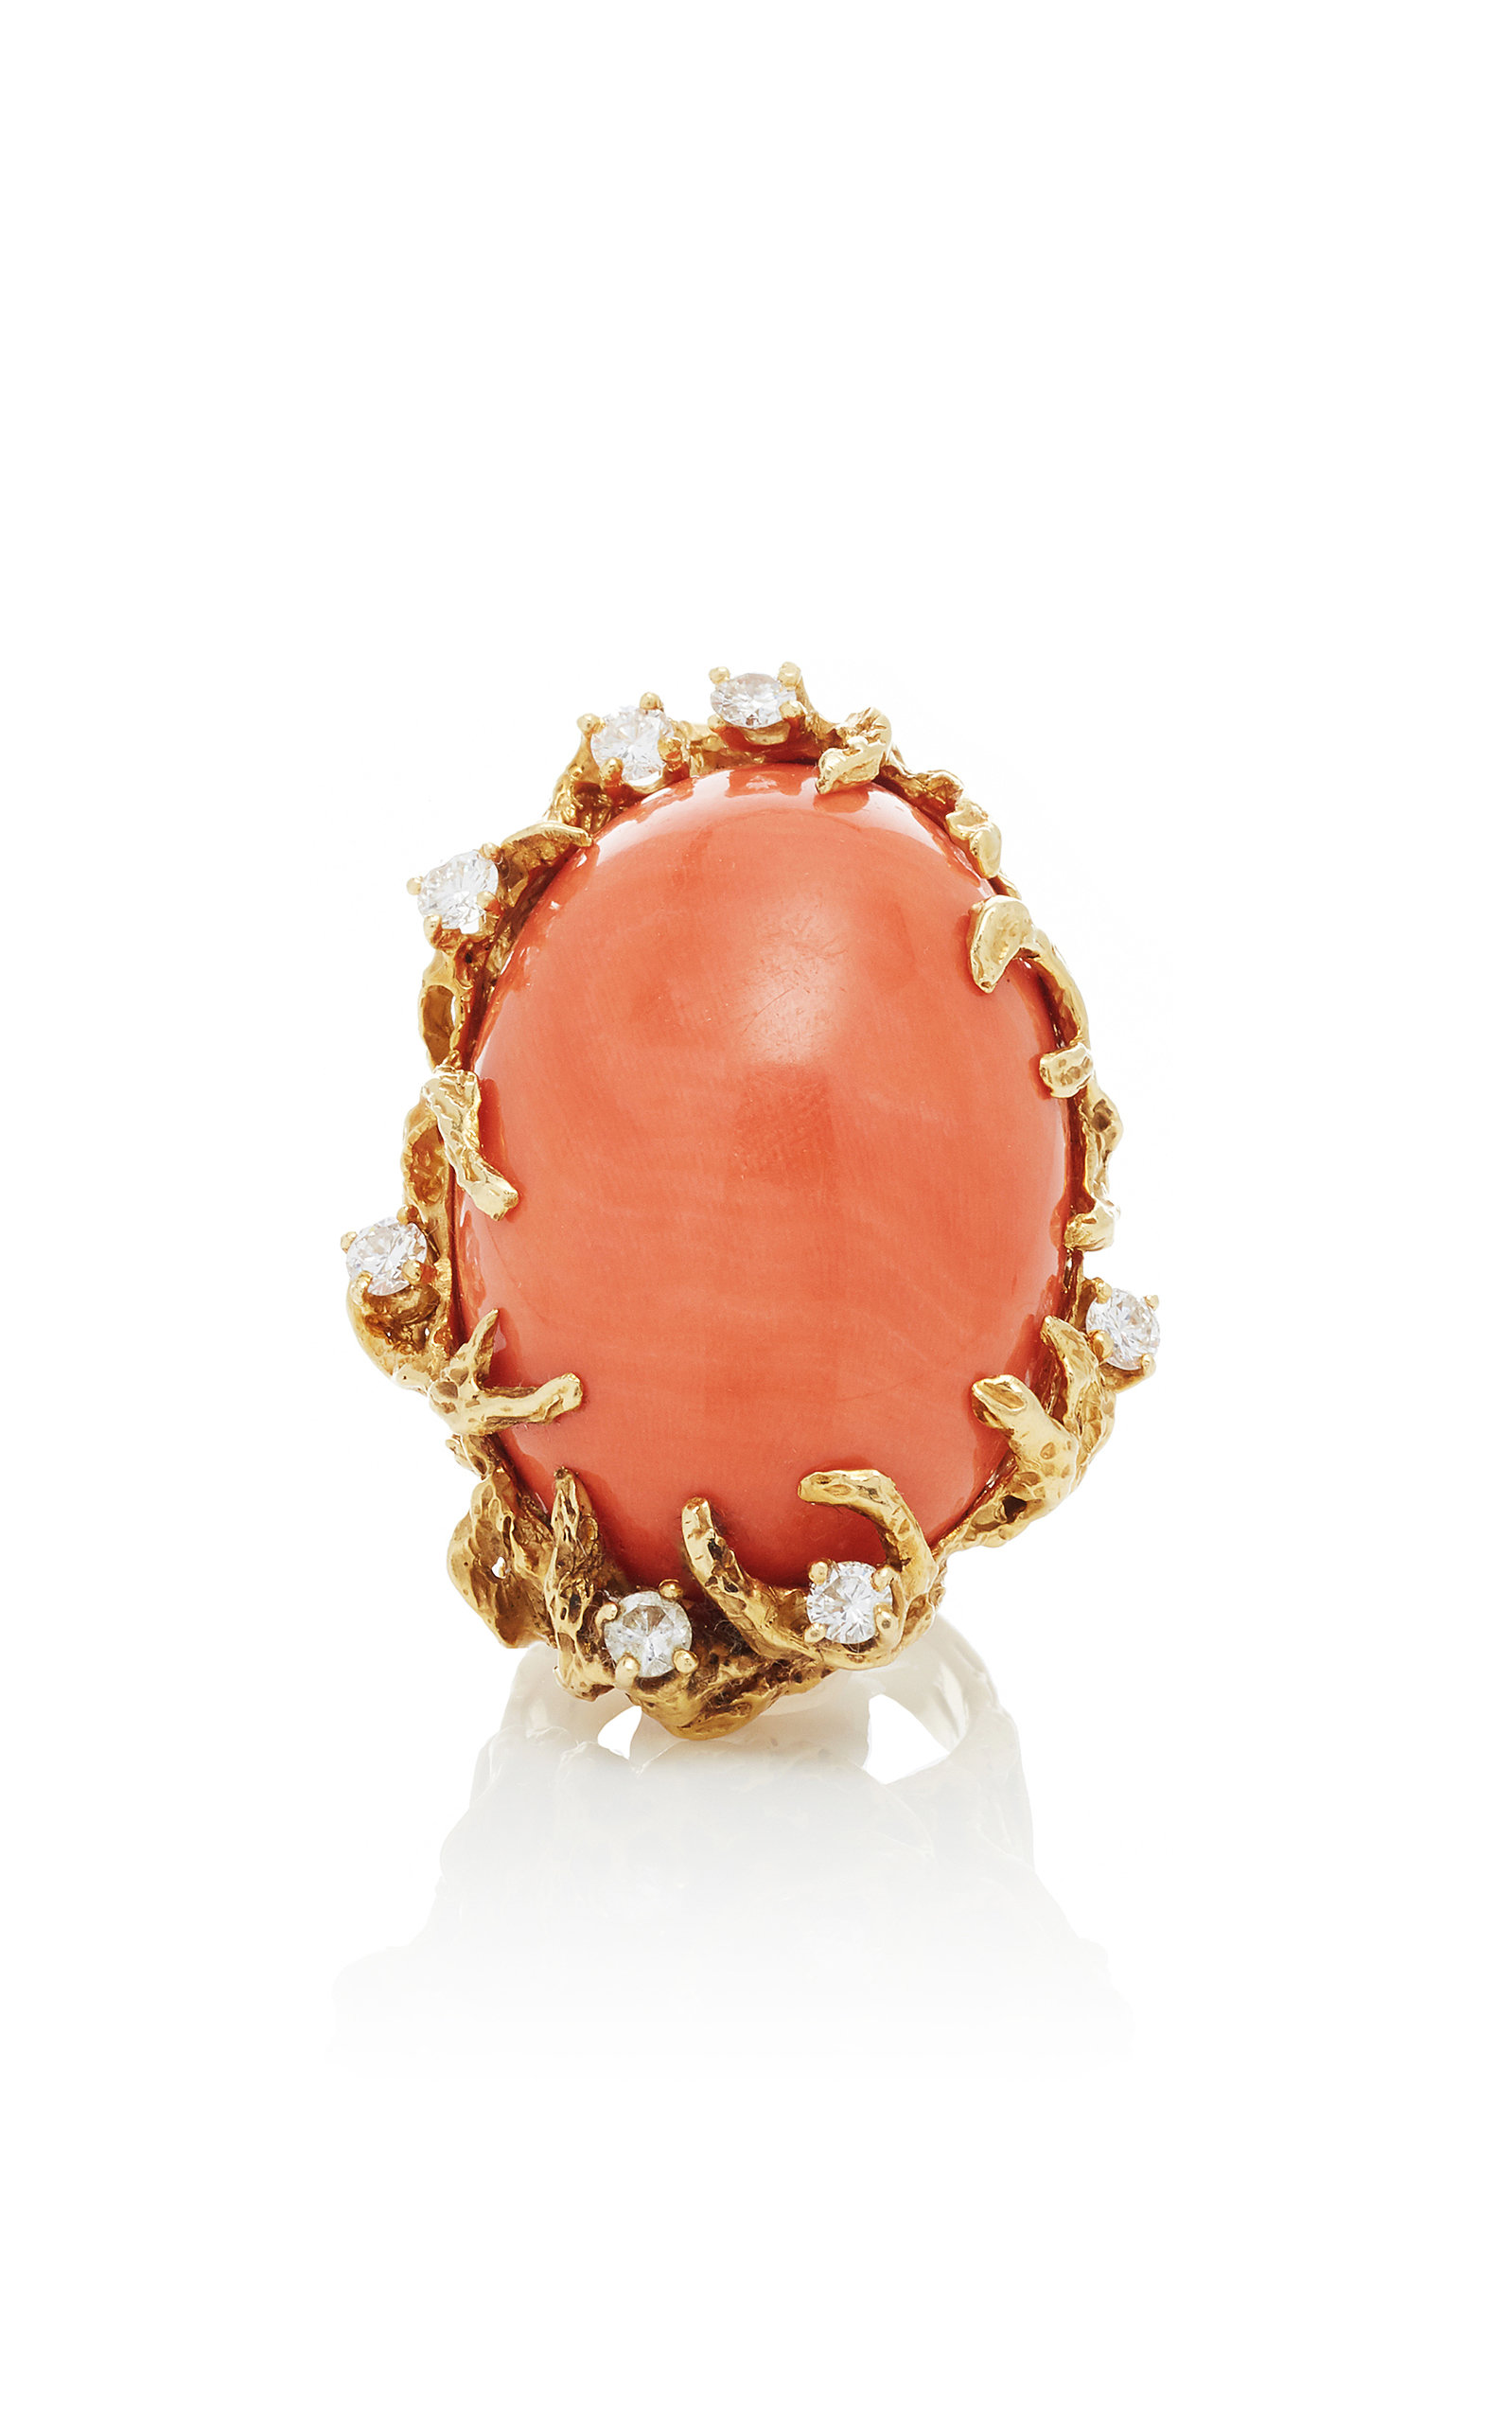 ONE-OF-A-KIND CORAL AND DIAMOND ON 18K GOLD RING BY ARTHUR KING C.1970